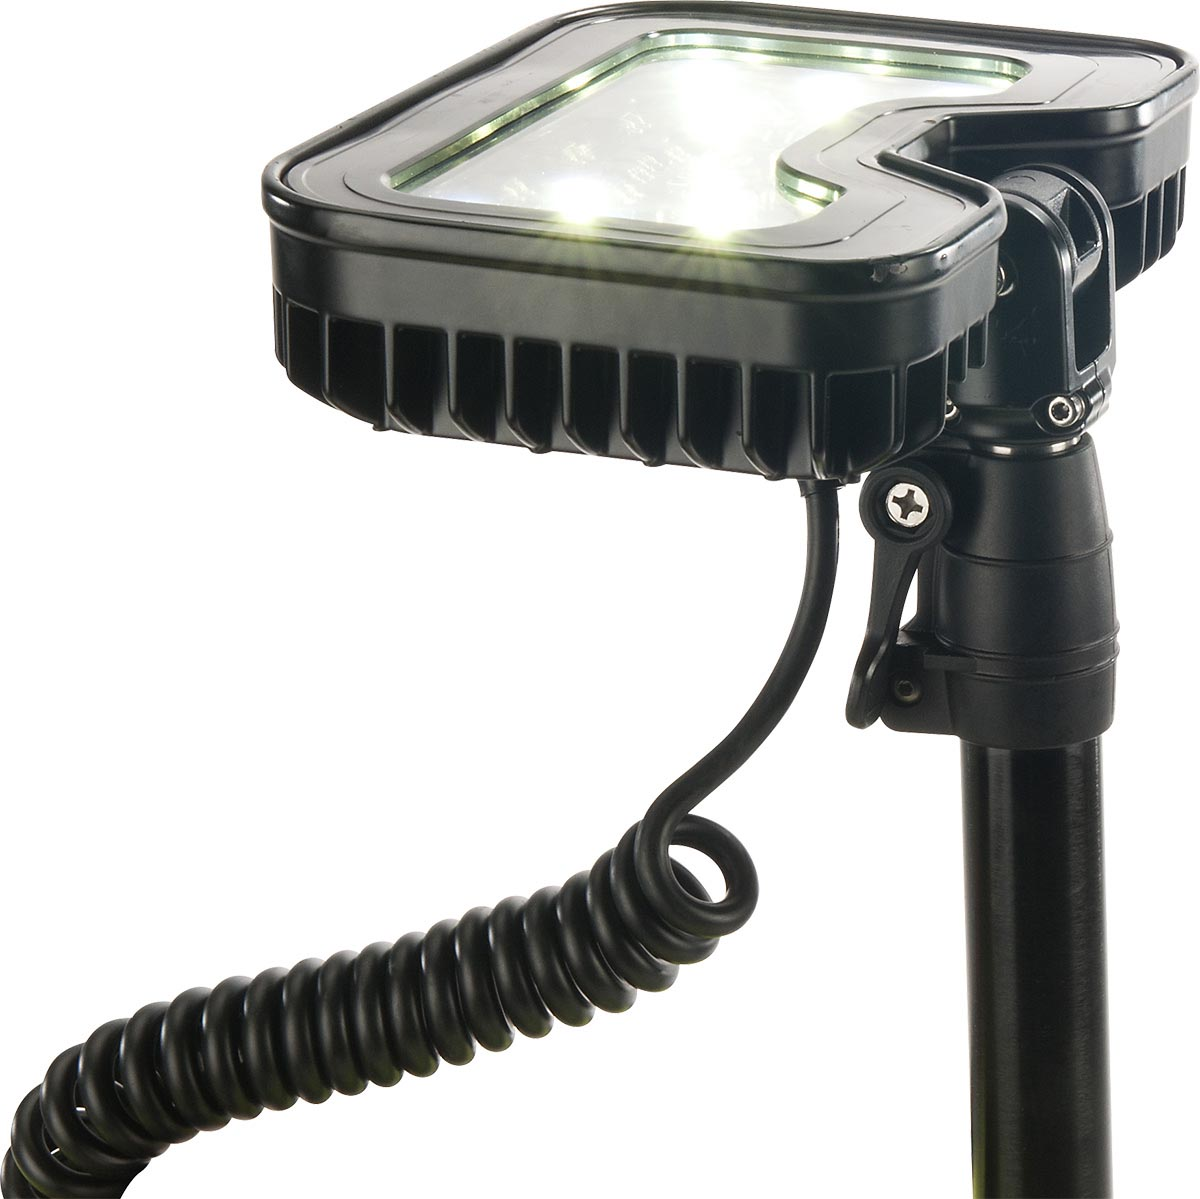 buy remote area light pelican 9455 shop safety certified rals